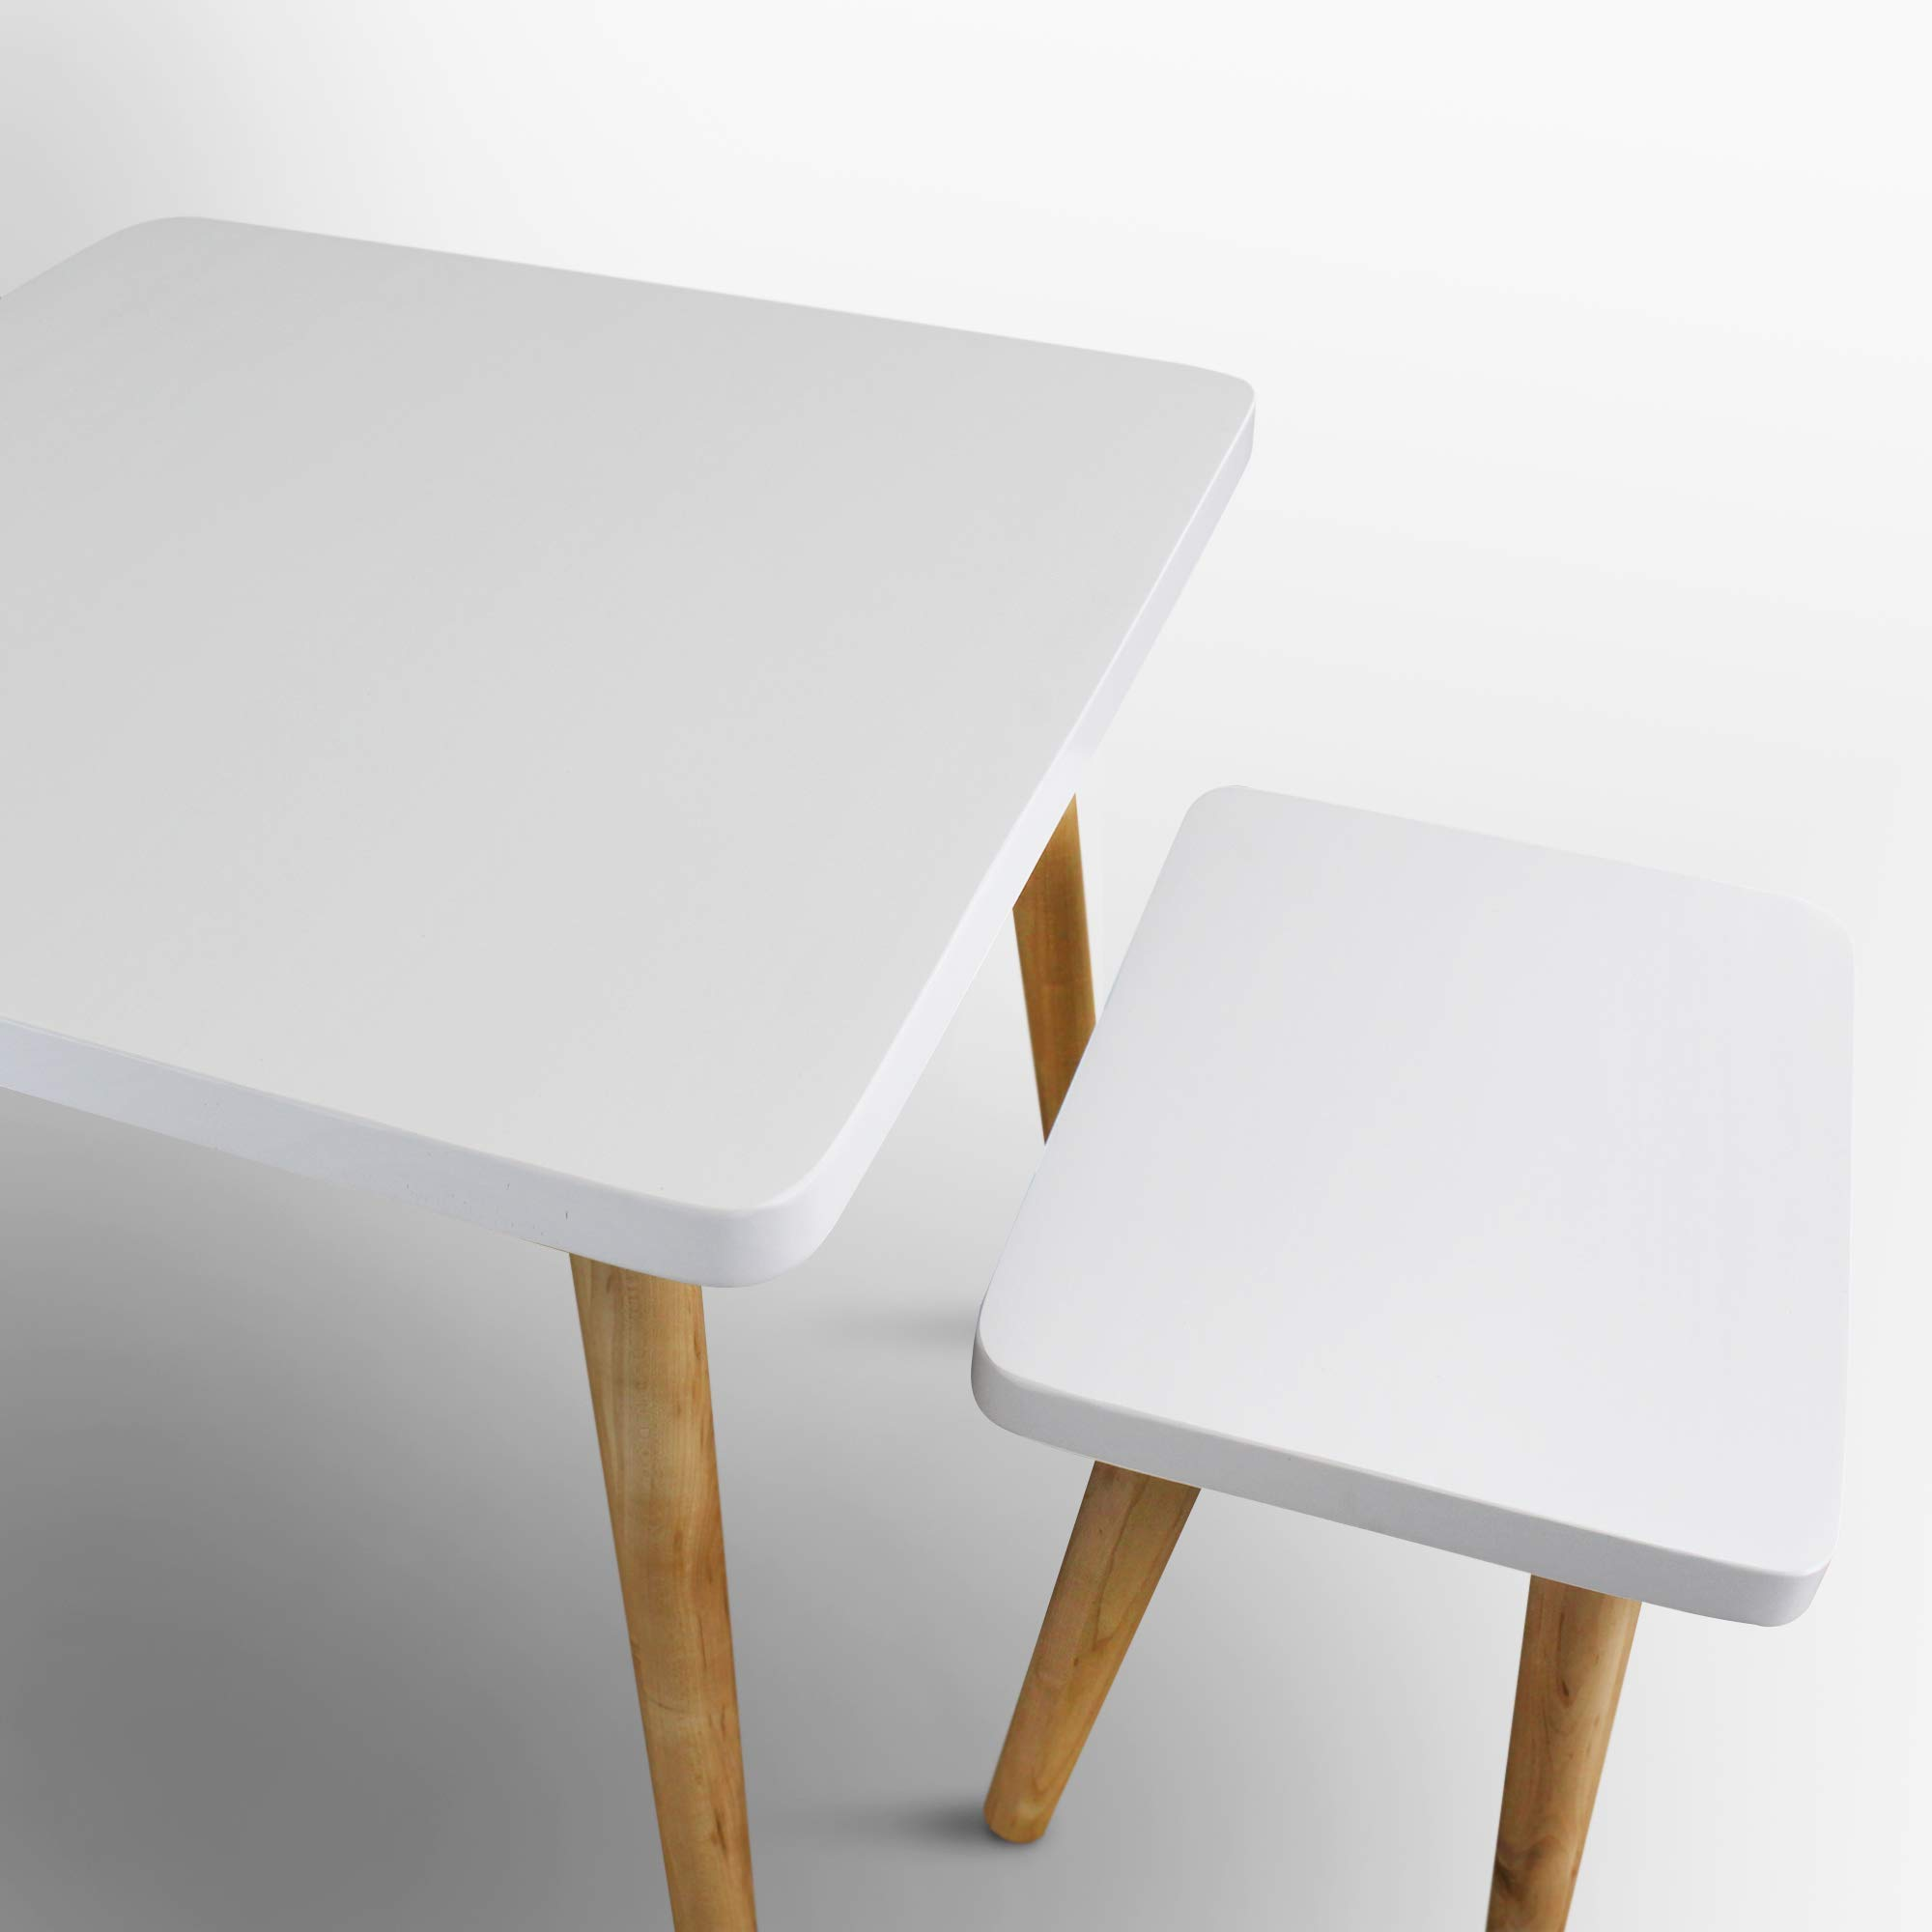 American Trails 560-31 The Easel Table & Chair Set Kid Table, Two-Tone (White, Natural) by American Trails (Image #7)